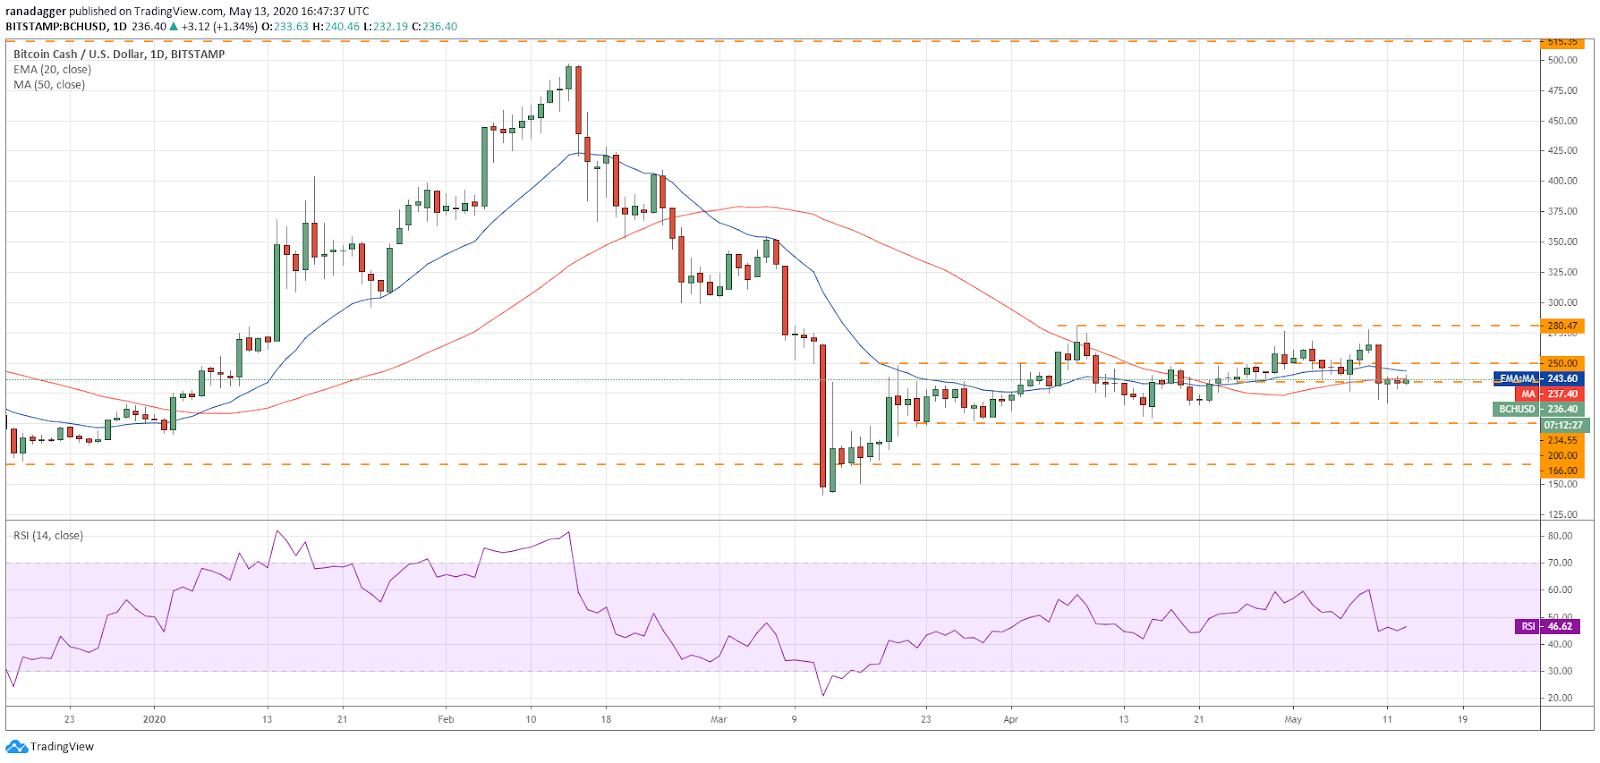 BCH–USD daily chart. Source: Tradingview